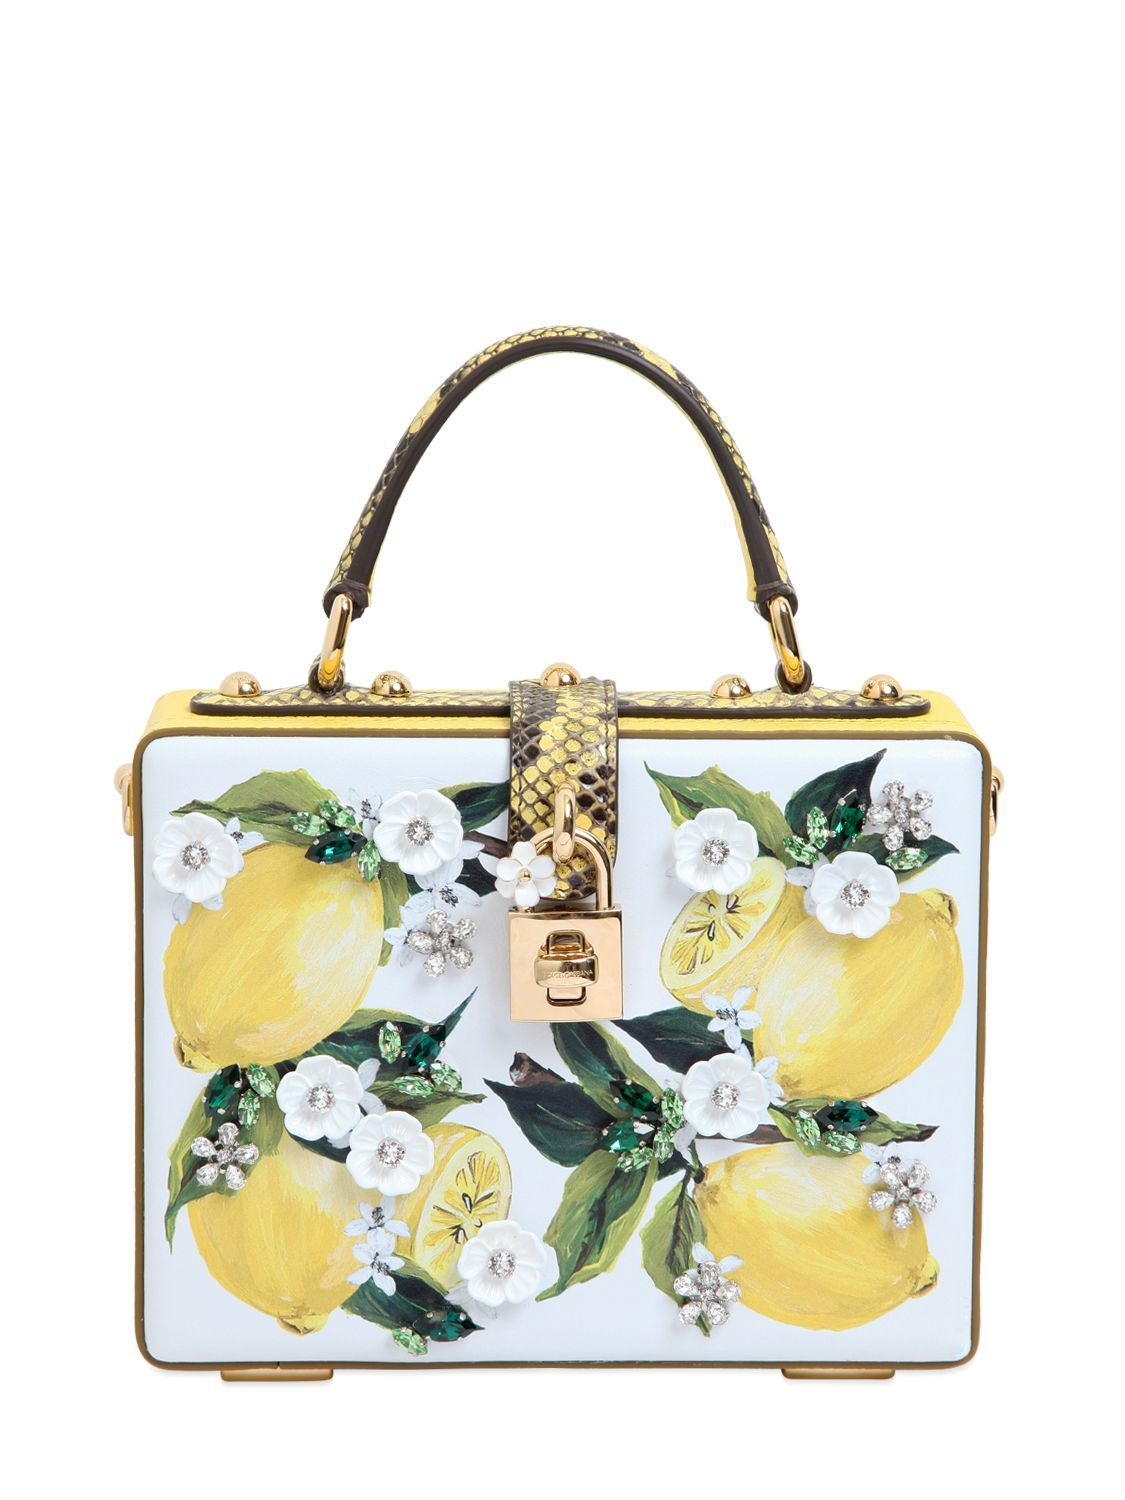 f60221b9d4bd Lyst - Dolce   Gabbana Lemon Printed Leather Dolce Bag in Yellow